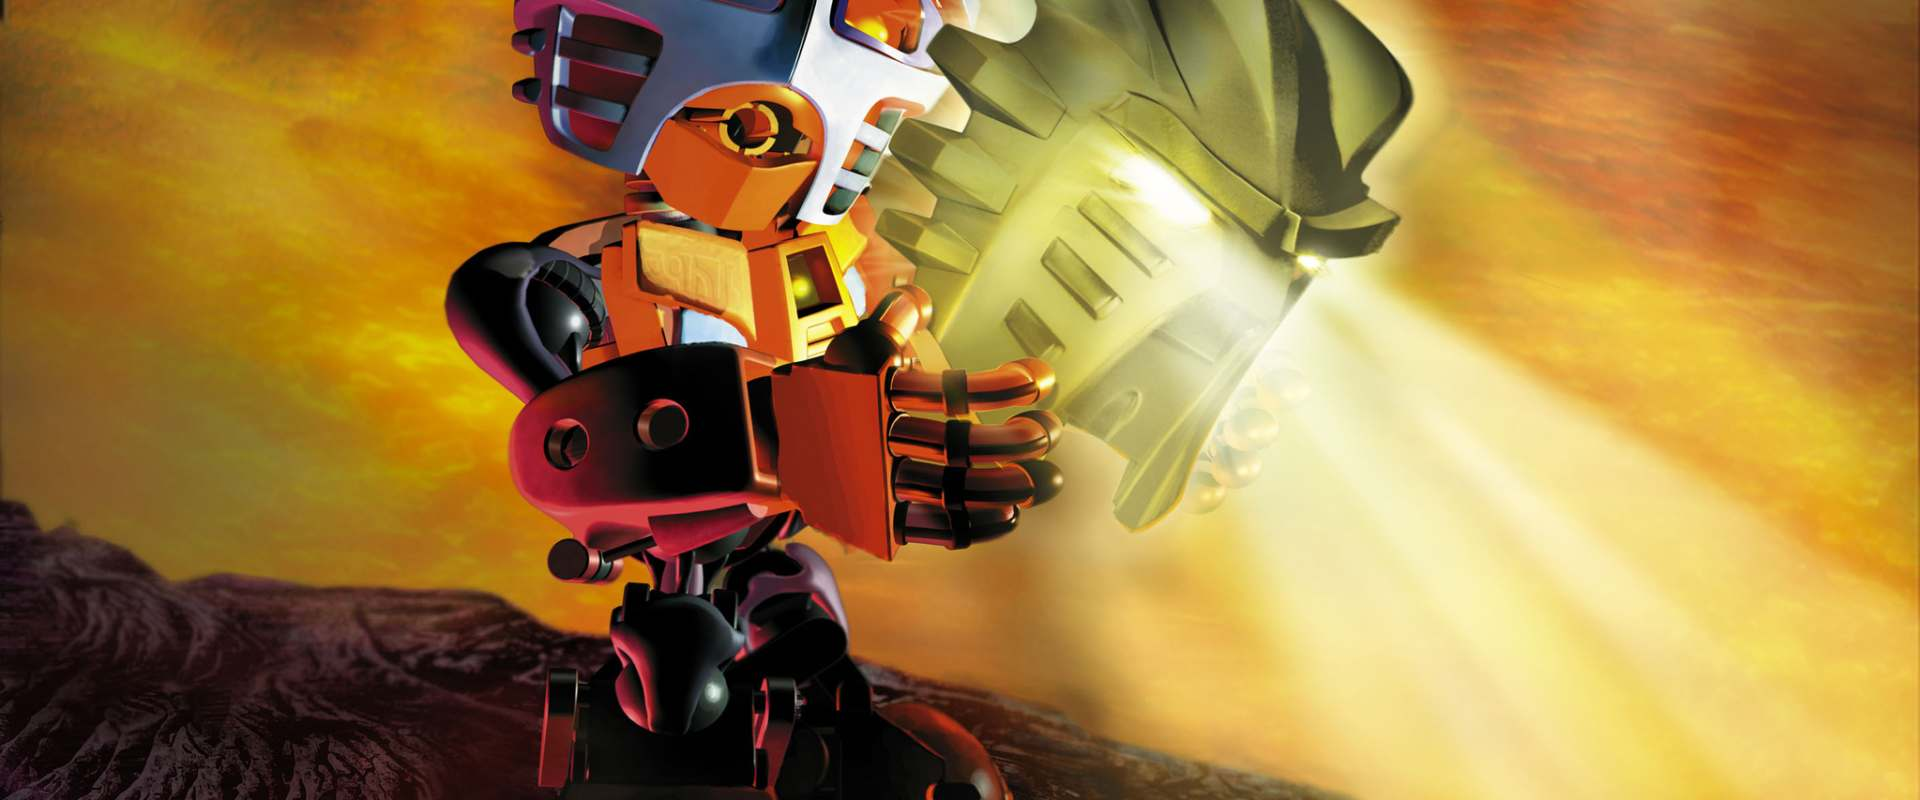 Bionicle: Mask of Light background 1